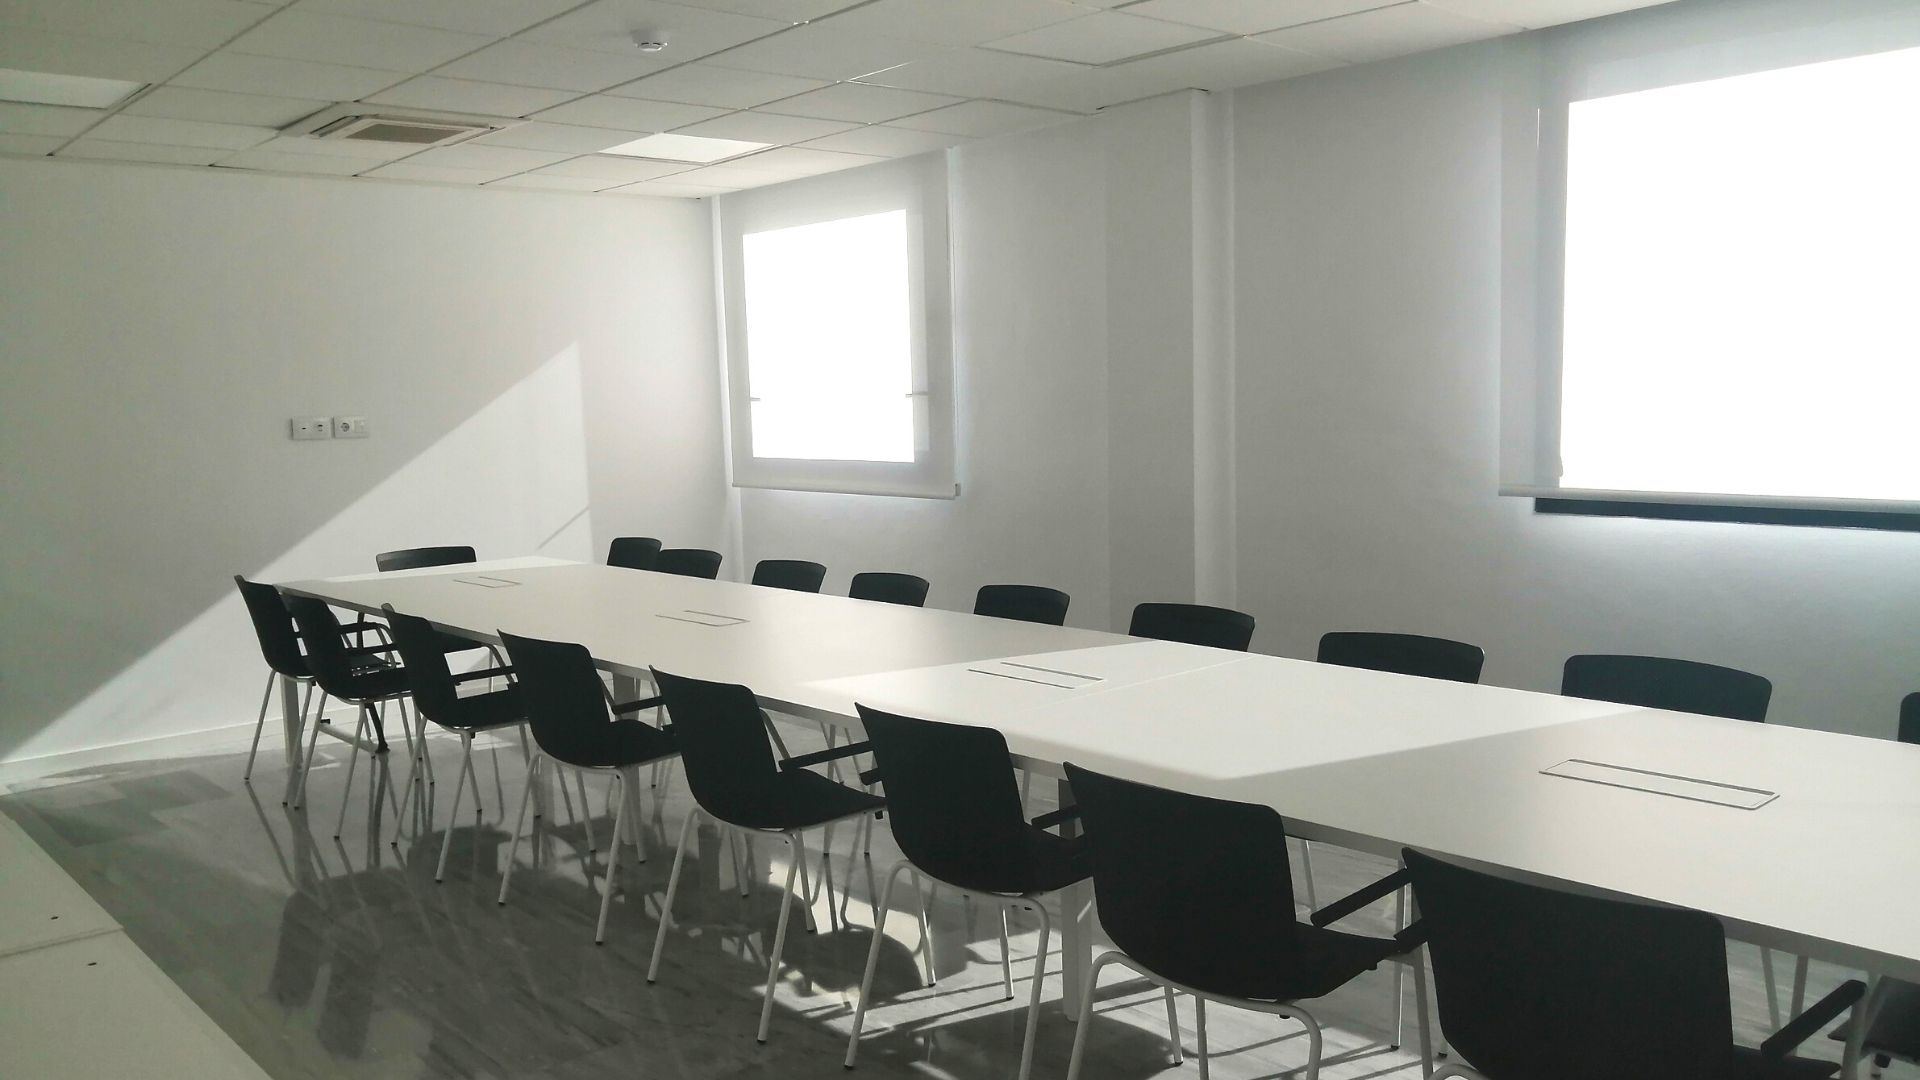 Our new Adessa office in Malaga is open! - victoria meeting room